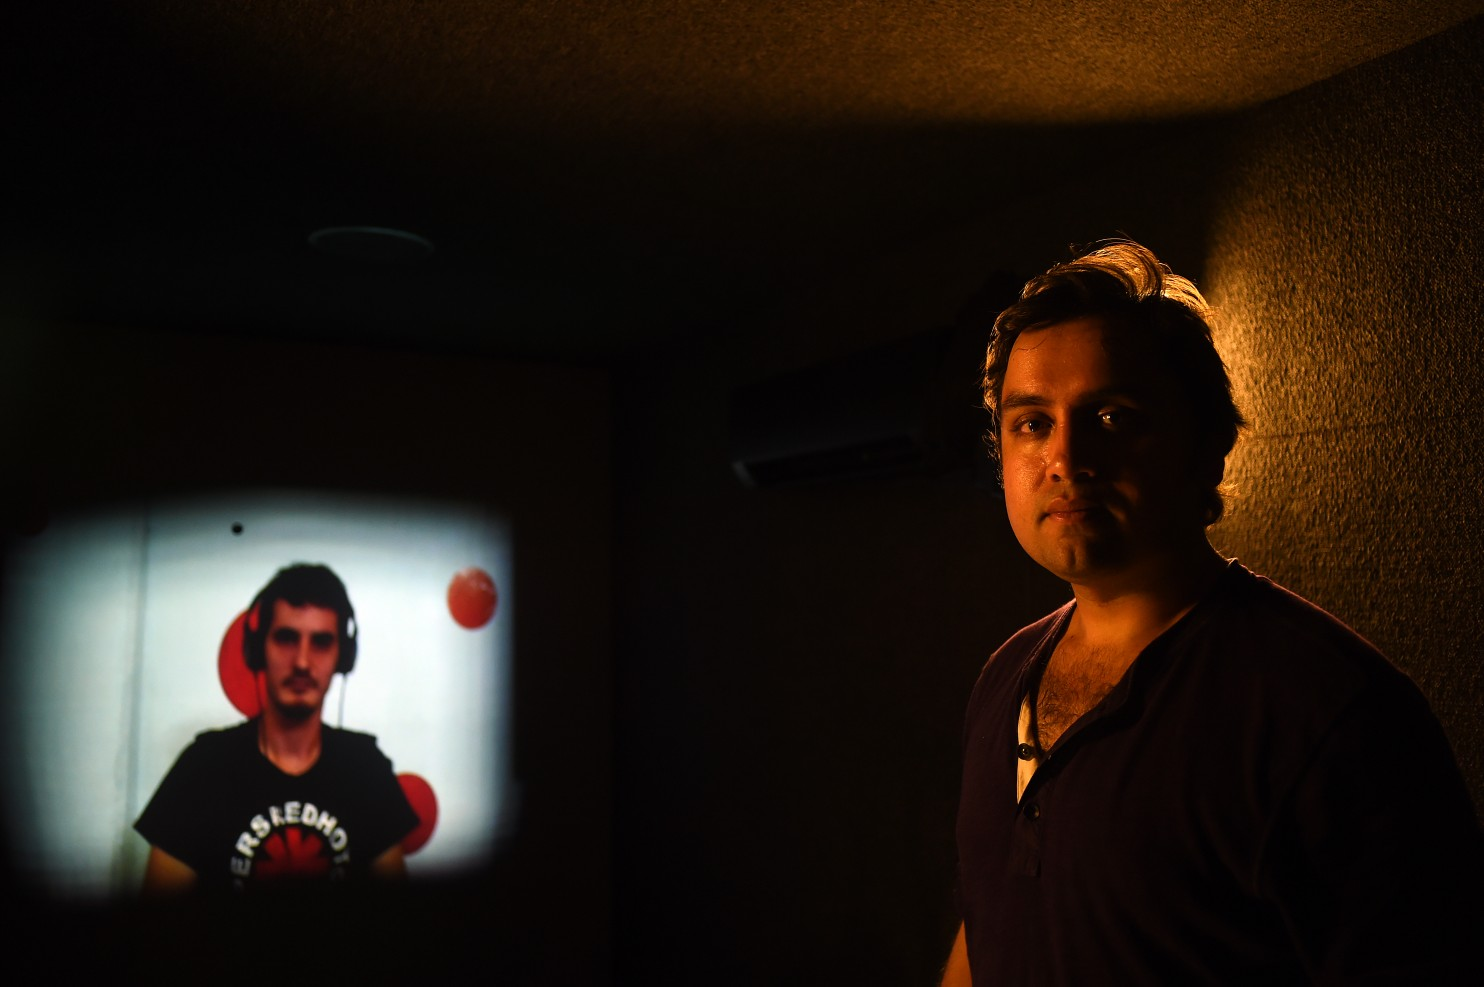 Artist Amar Bakshi, 31, created the Portals project, an audiovisual installation connecting visitors to one-on-one conversations with people in Tehran; Herat, Afghanistan; and Havana. (Astrid Riecken/For The Washington Post